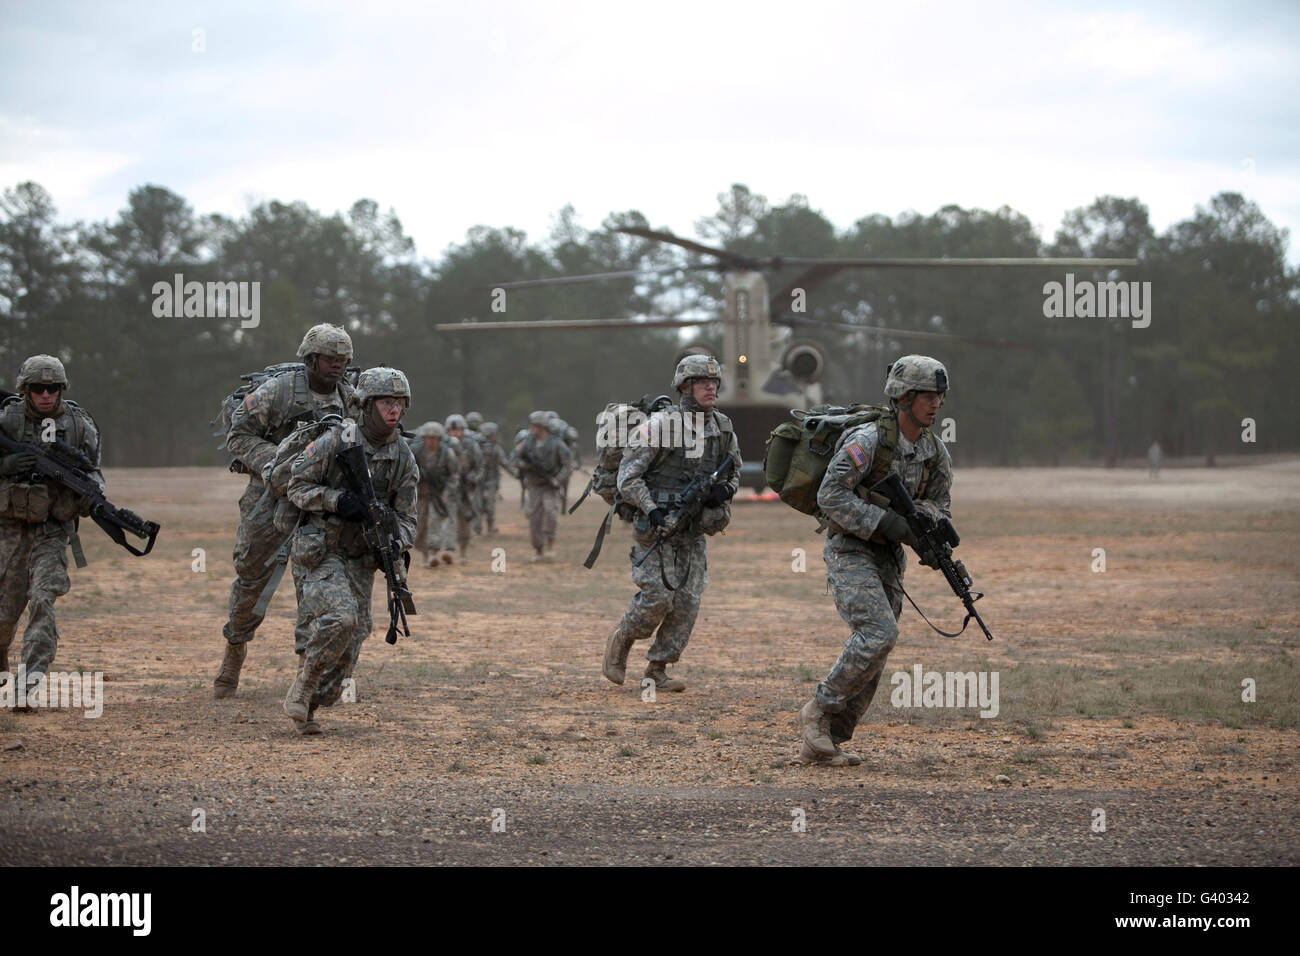 Soldiers exit a CH-47 Chinook helicopter at Fort Benning, Georgia. - Stock Image